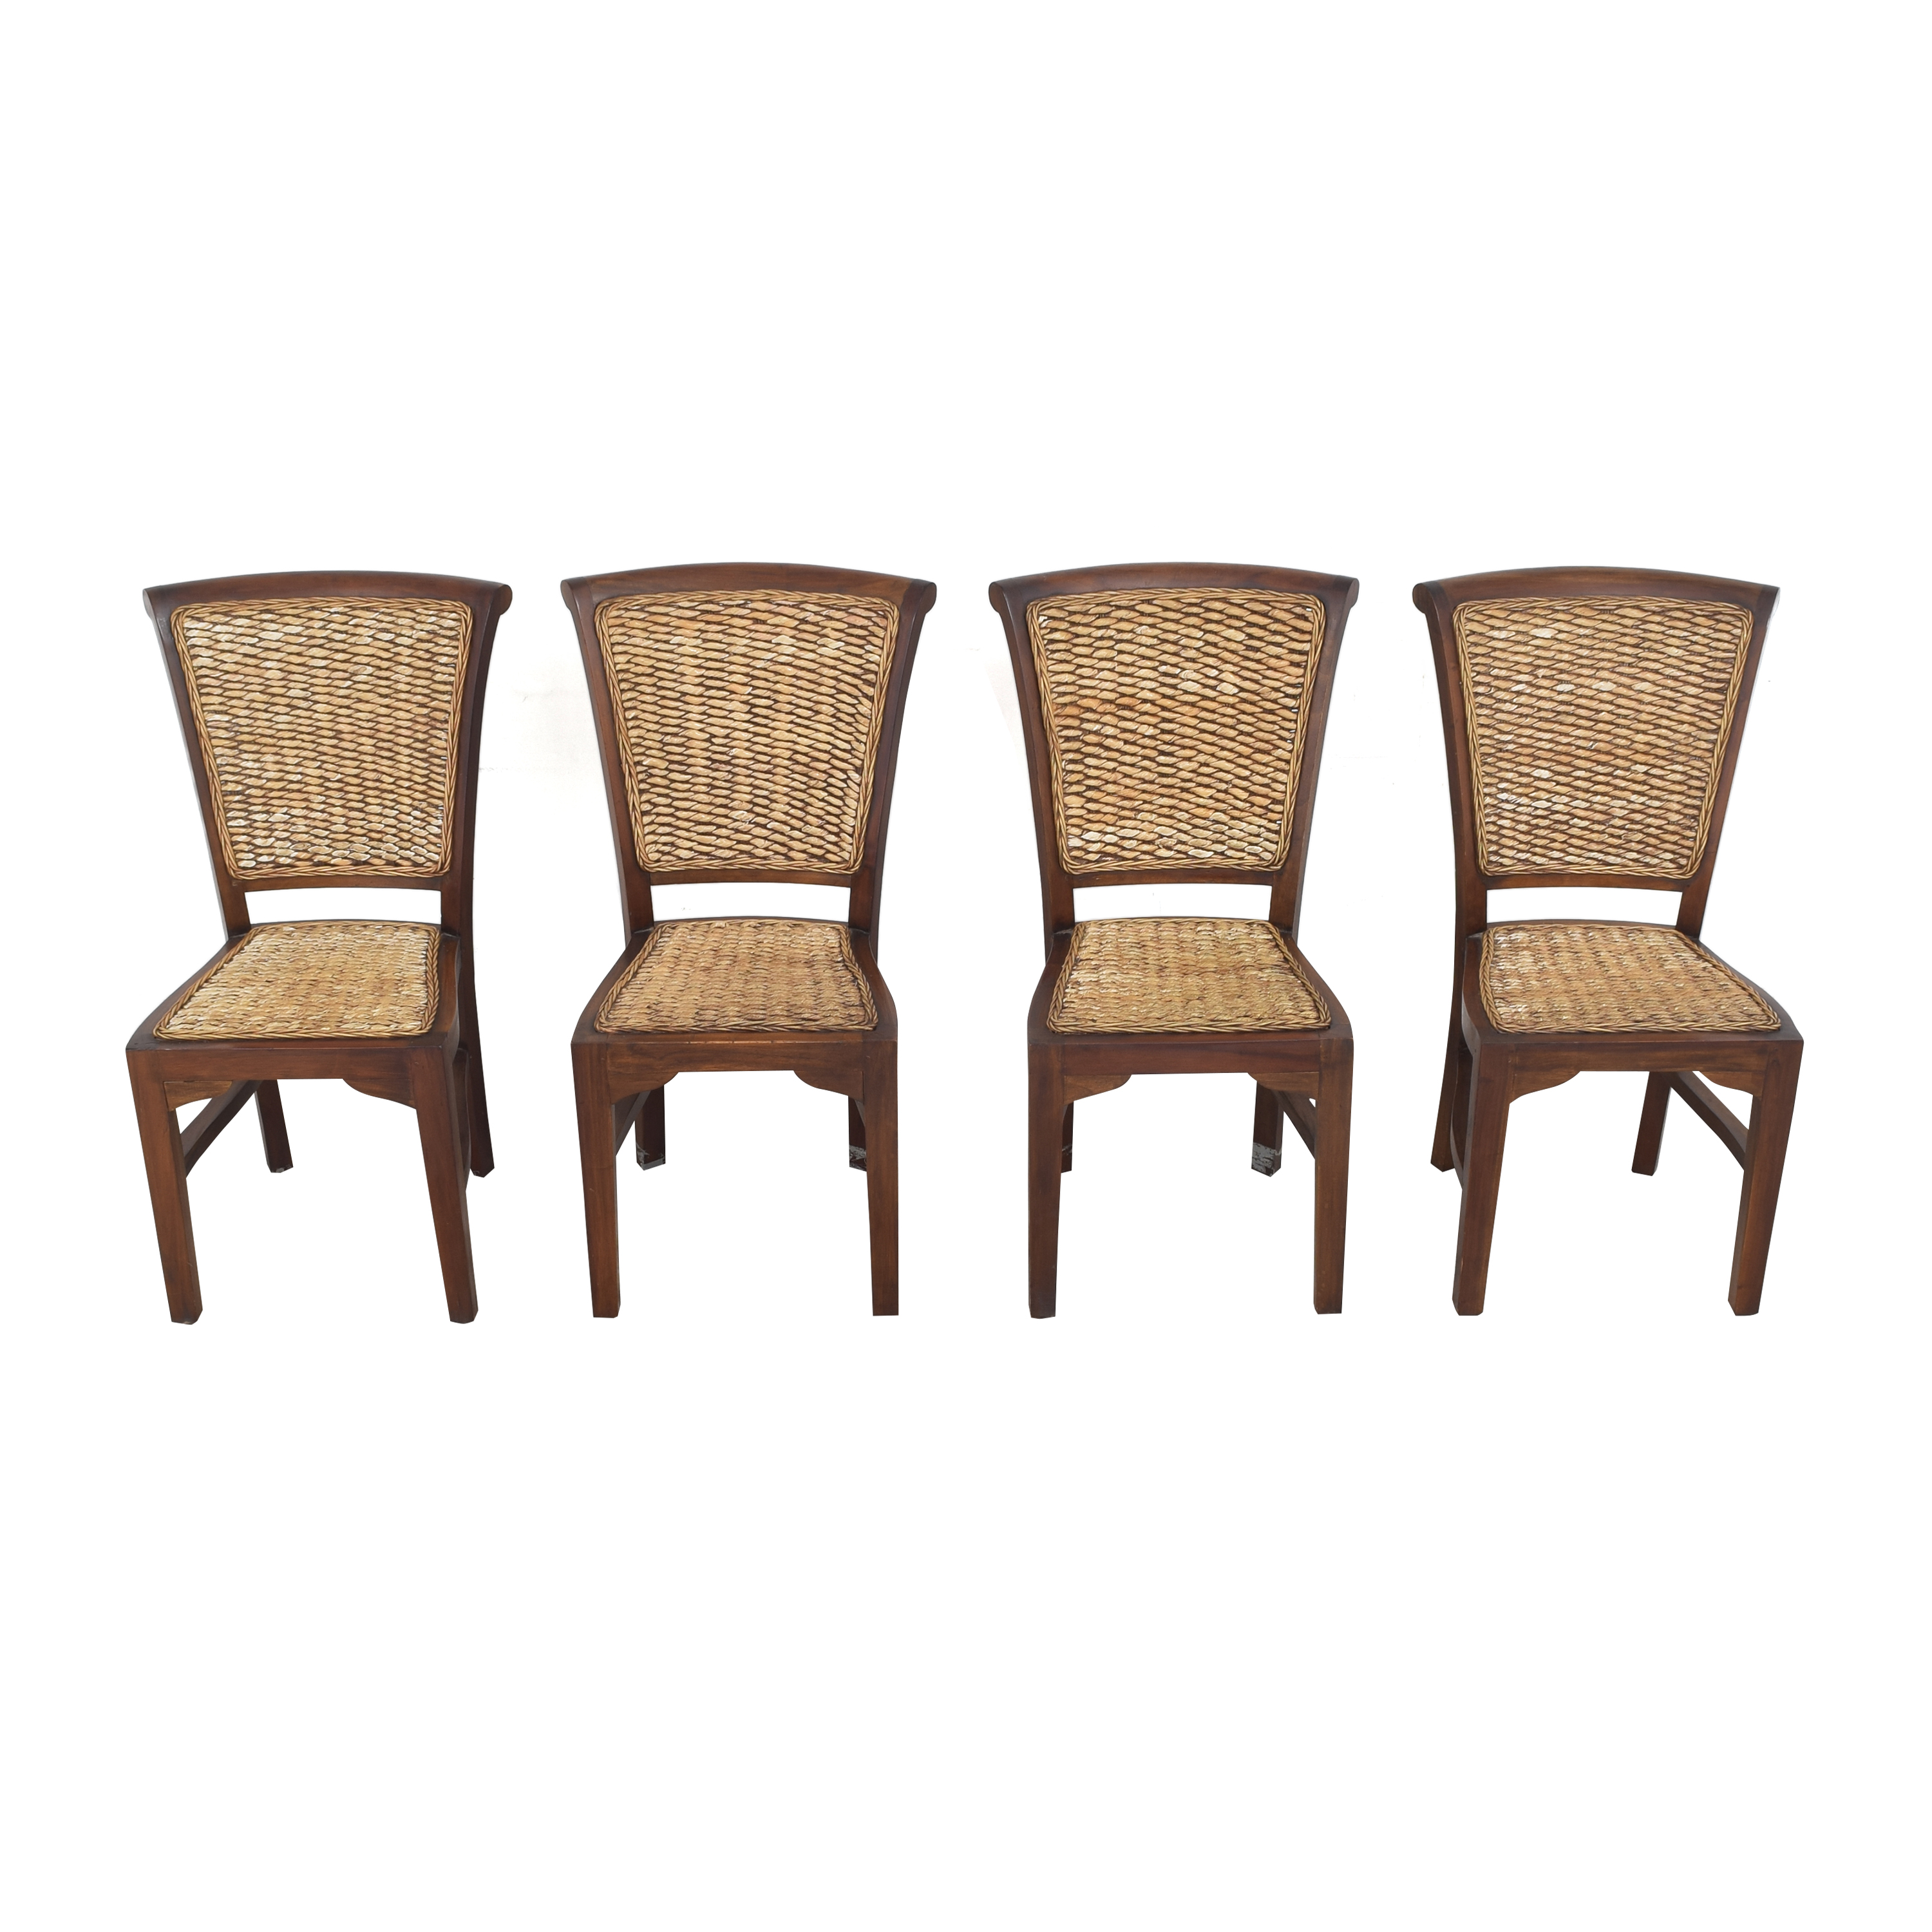 ABC Carpet & Home Woven Dining Chairs / Dining Chairs